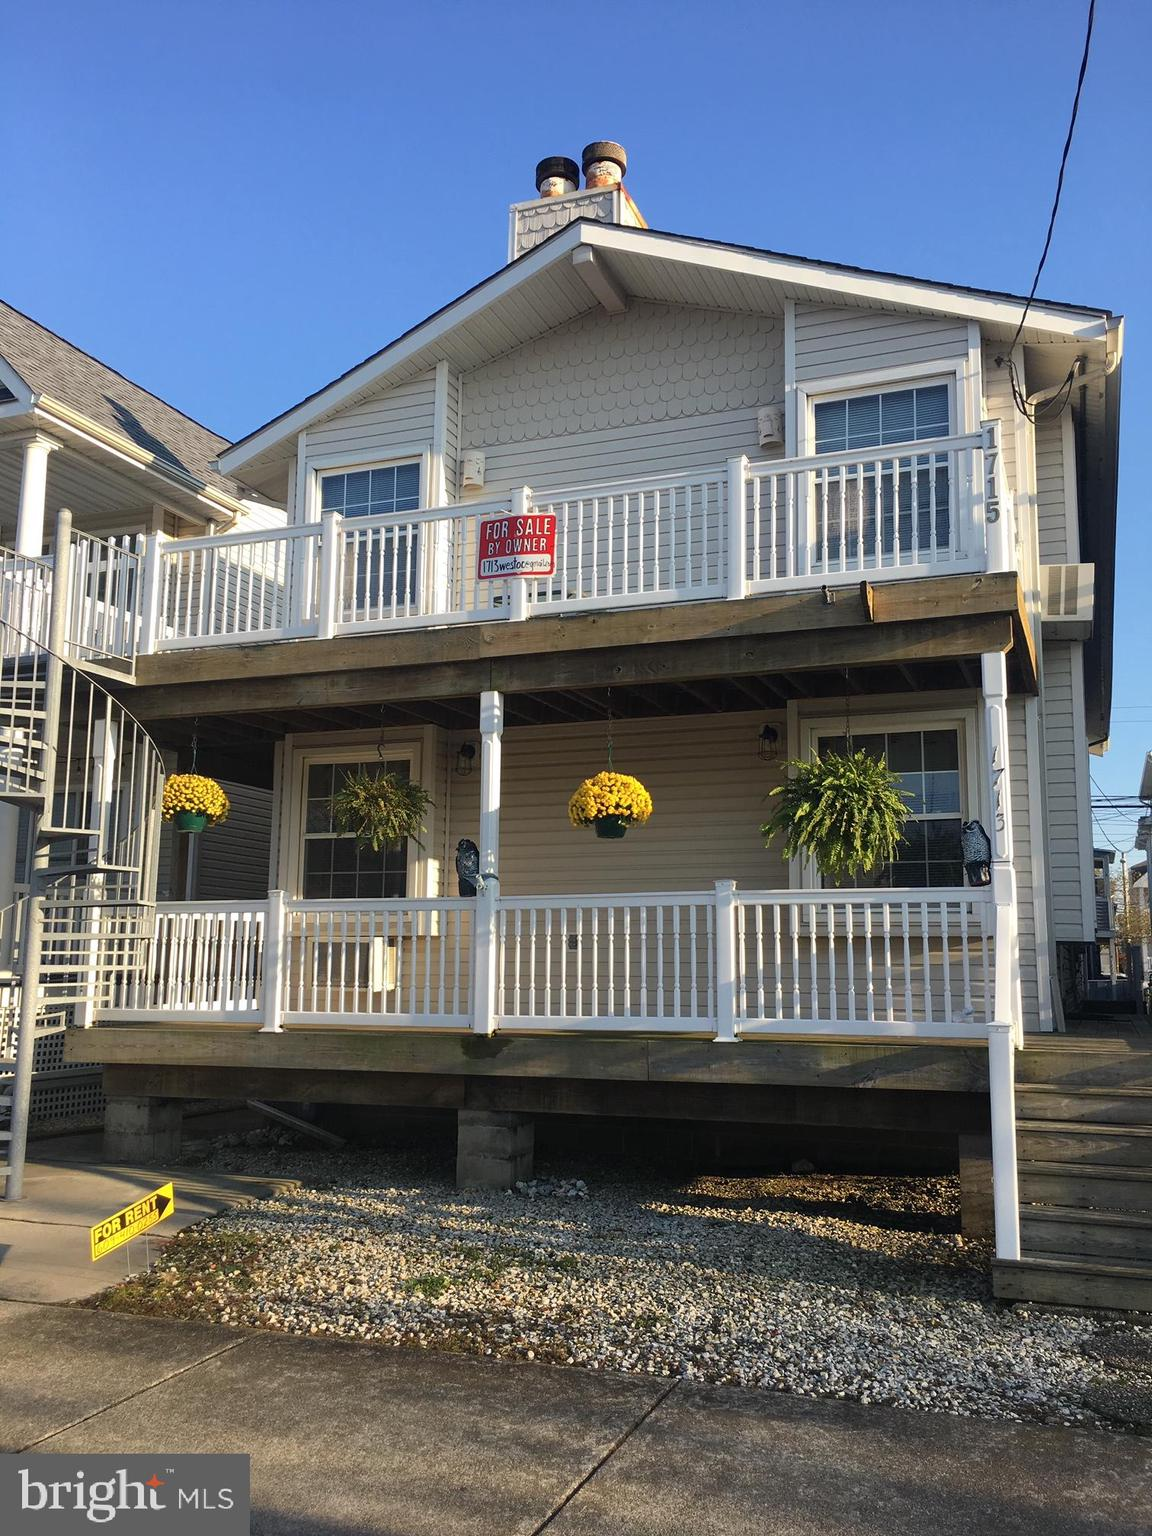 1713 W WEST AVENUE, OCEAN CITY, NJ 08226